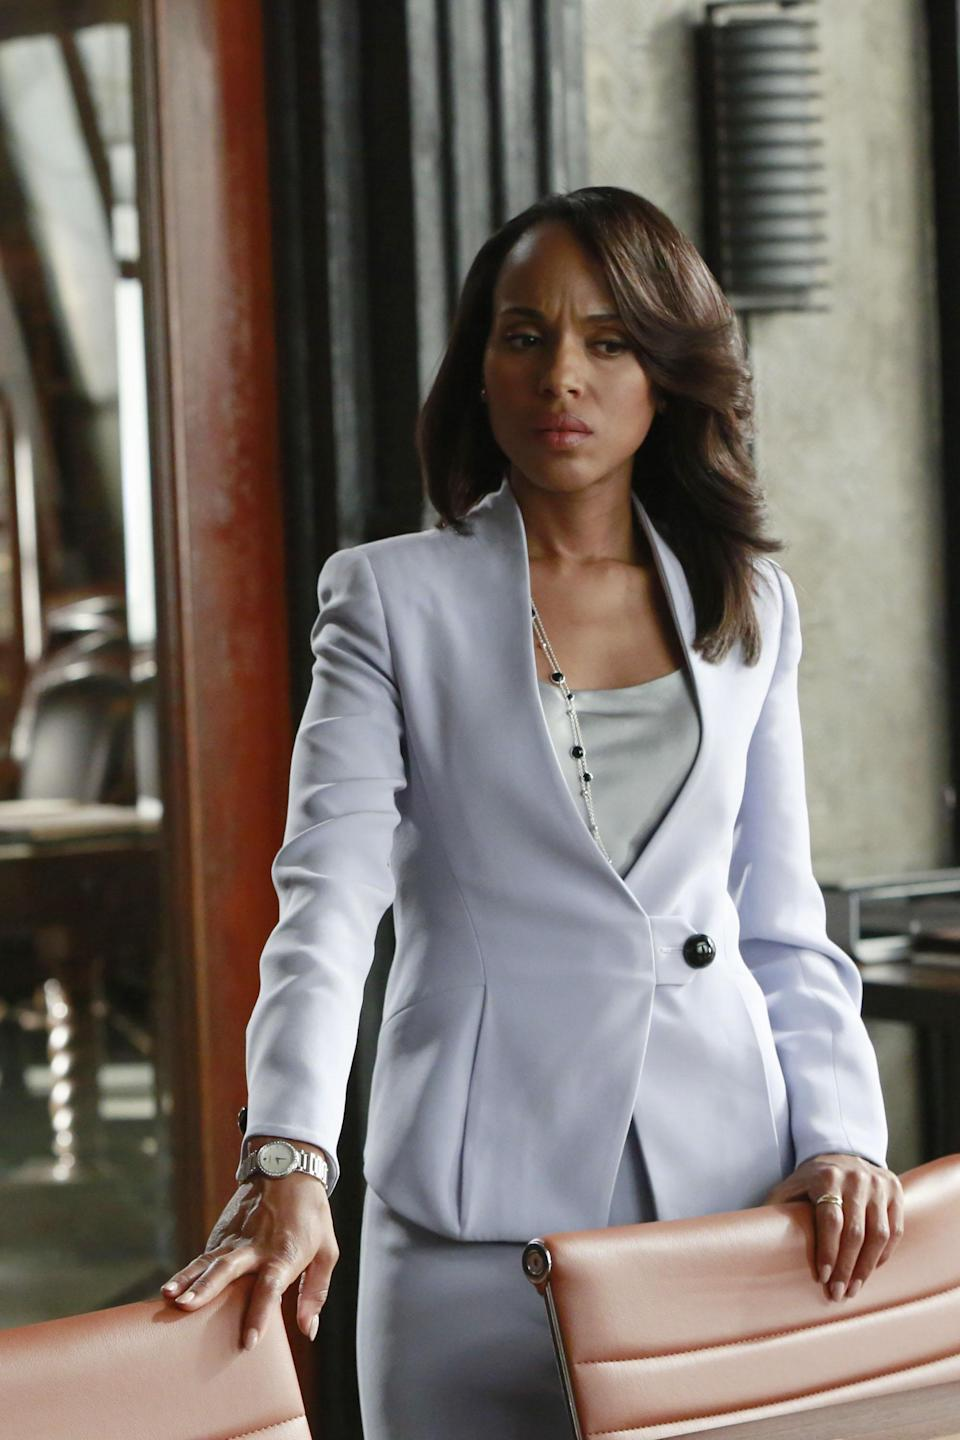 "<strong><h2>Olivia Pope</h2></strong><em>Scandal</em> came to an end after seven seasons in 2018. And while some people are probably grateful that they no longer have to worry about the crazy antics of politicians in Shonda Rhimes' fictional D.C., there is no denying that Olivia Pope is a national treasure. And her style is iconic.<br><br>Here's what you'll need to recreate her look, in addition to a knock-off Prada bag. This <u><a href=""http://www.glamourtress.com/Model-Model-Deep-Invisible-L-Part-Lace-Front-Dream-p/mm-diplfw-dream.htm?1=1&CartID=1"" rel=""nofollow noopener"" target=""_blank"" data-ylk=""slk:bouncy wig"" class=""link rapid-noclick-resp"">bouncy wig</a></u> will capture Pope's signature blow out. Some <u><a href=""https://www.missguidedus.com/zip-front-crepe-wide-leg-pants?istCompanyId=6f000e44-d468-46b6-b05b-e9e08130e2eb&istItemId=pawqrxpwi&istBid=tzaw&gclid=EAIaIQobChMI26y5ysXU1gIVCmSGCh1wkQNGEAQYBSABEgICNfD_BwE"" rel=""nofollow noopener"" target=""_blank"" data-ylk=""slk:wide leg trousers"" class=""link rapid-noclick-resp"">wide leg trousers</a></u>, a power blouse of your choice, and a white suit jacket will get you ready to handle Halloween. Yes, you'll need some pumps.<span class=""copyright"">Photo: Shondaland/ABC Studios USA Television.</span>"